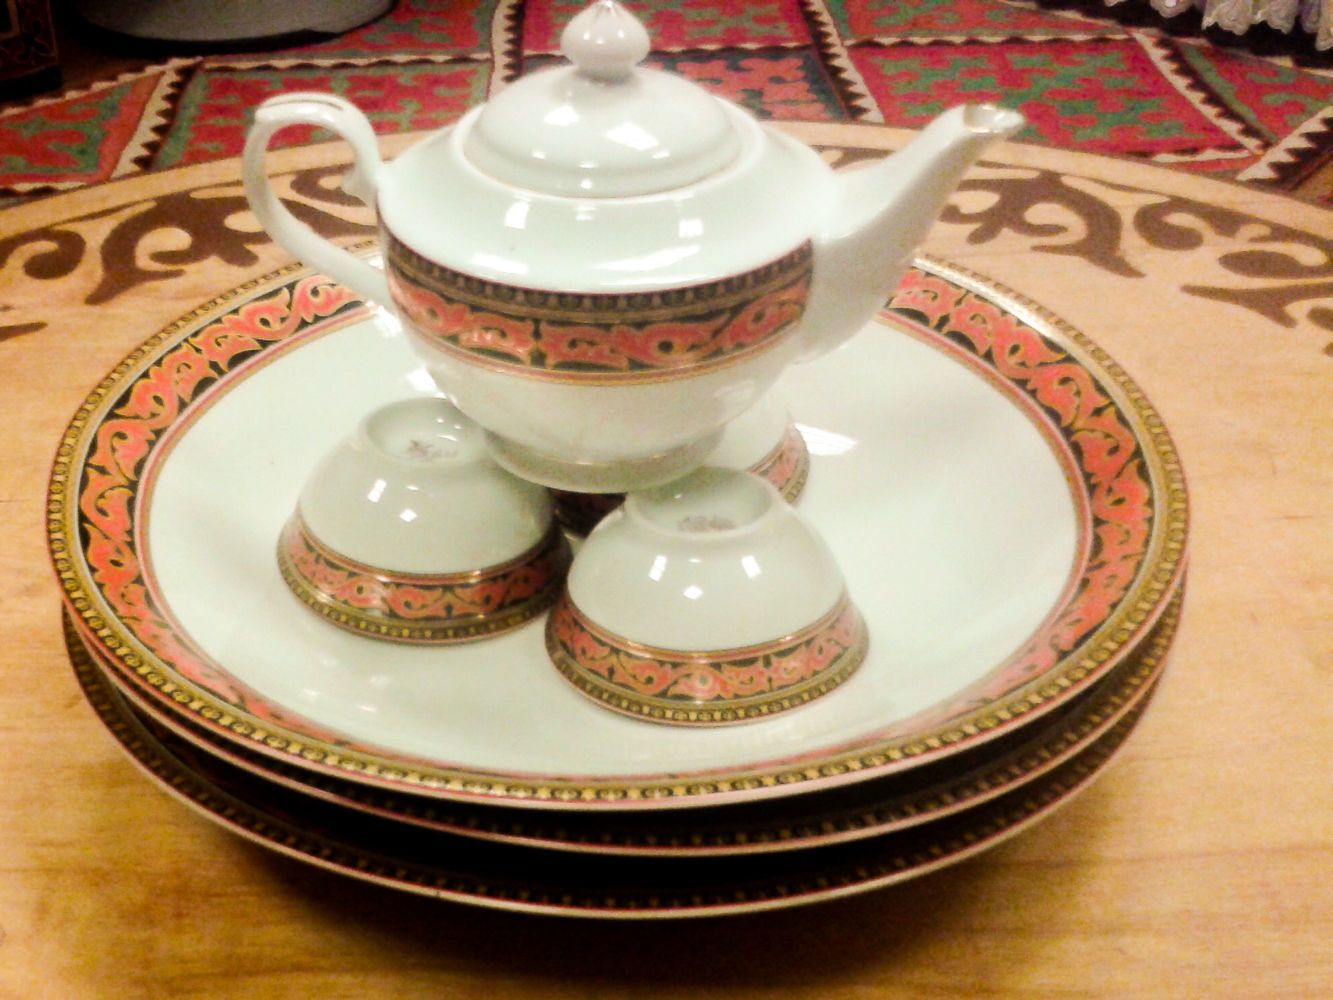 Central Asian teapot and cups with traditional design